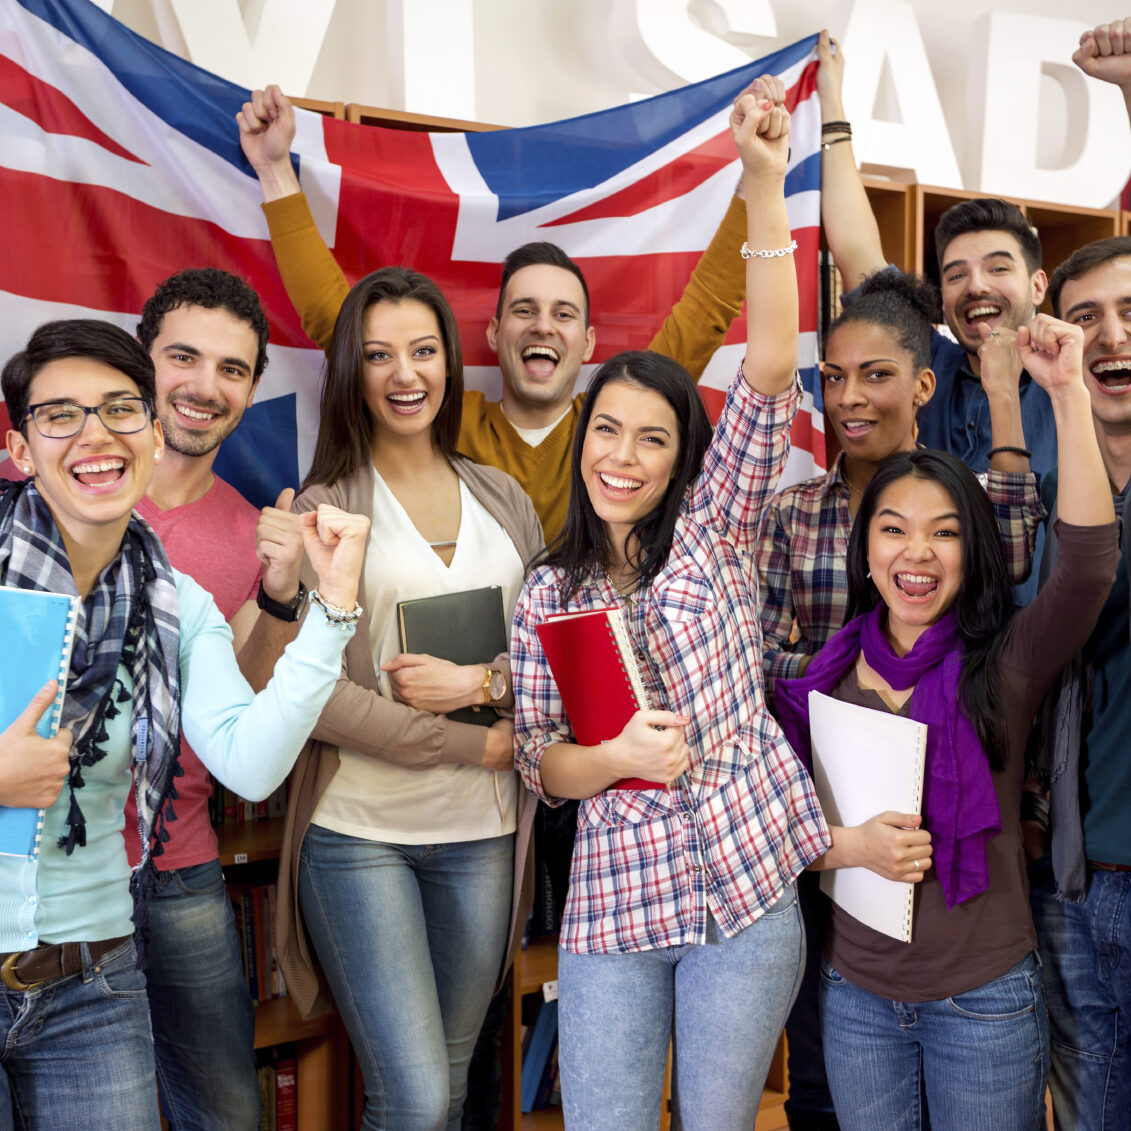 Cheerful British students with raised fists and flag of United Kingdom celebrate victory